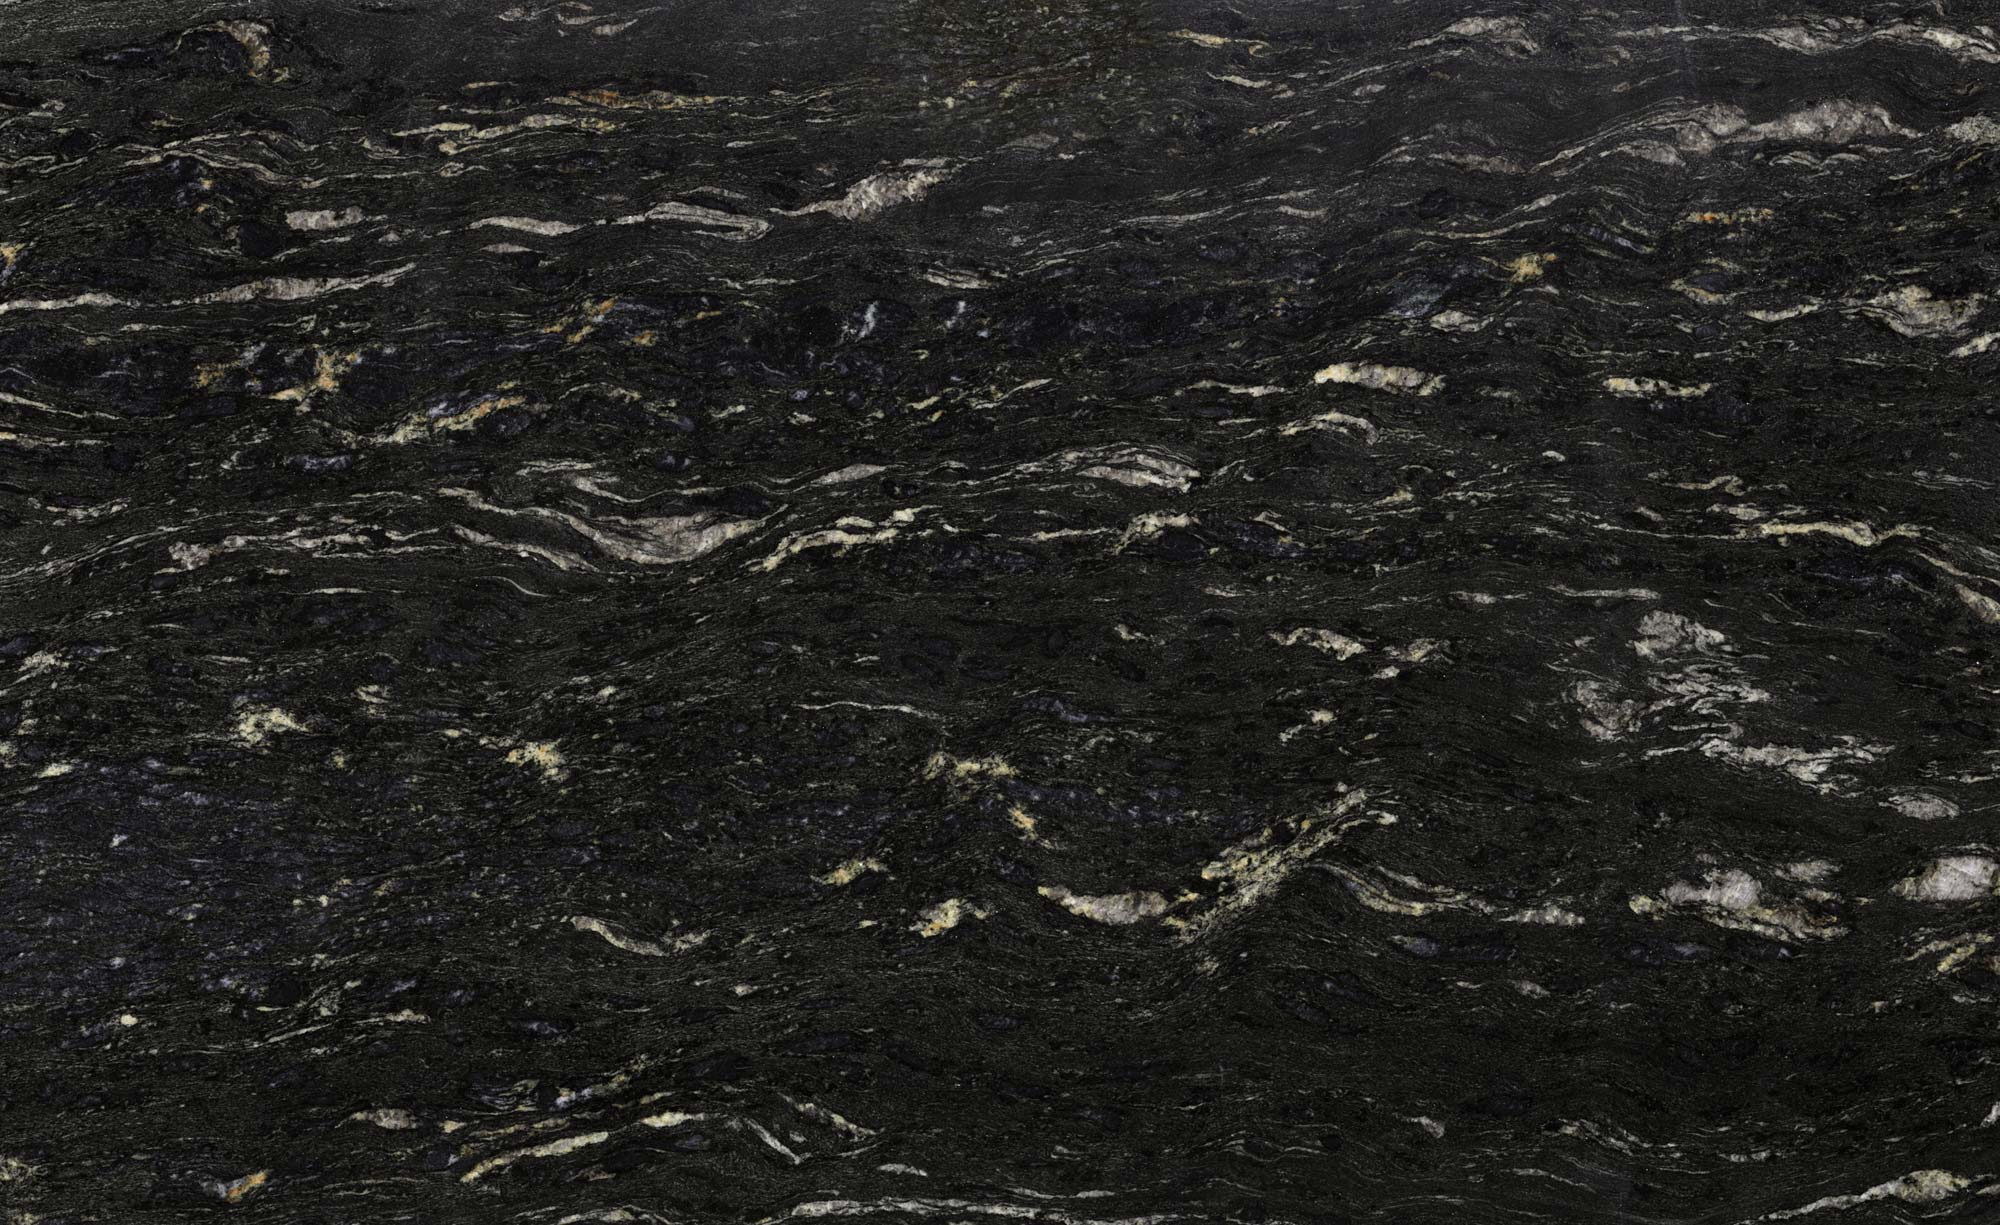 Kitchen Cabinets Vancouver Bc Black Cosmic Lu 2000 Zoom Aeon Stone Tile Granite